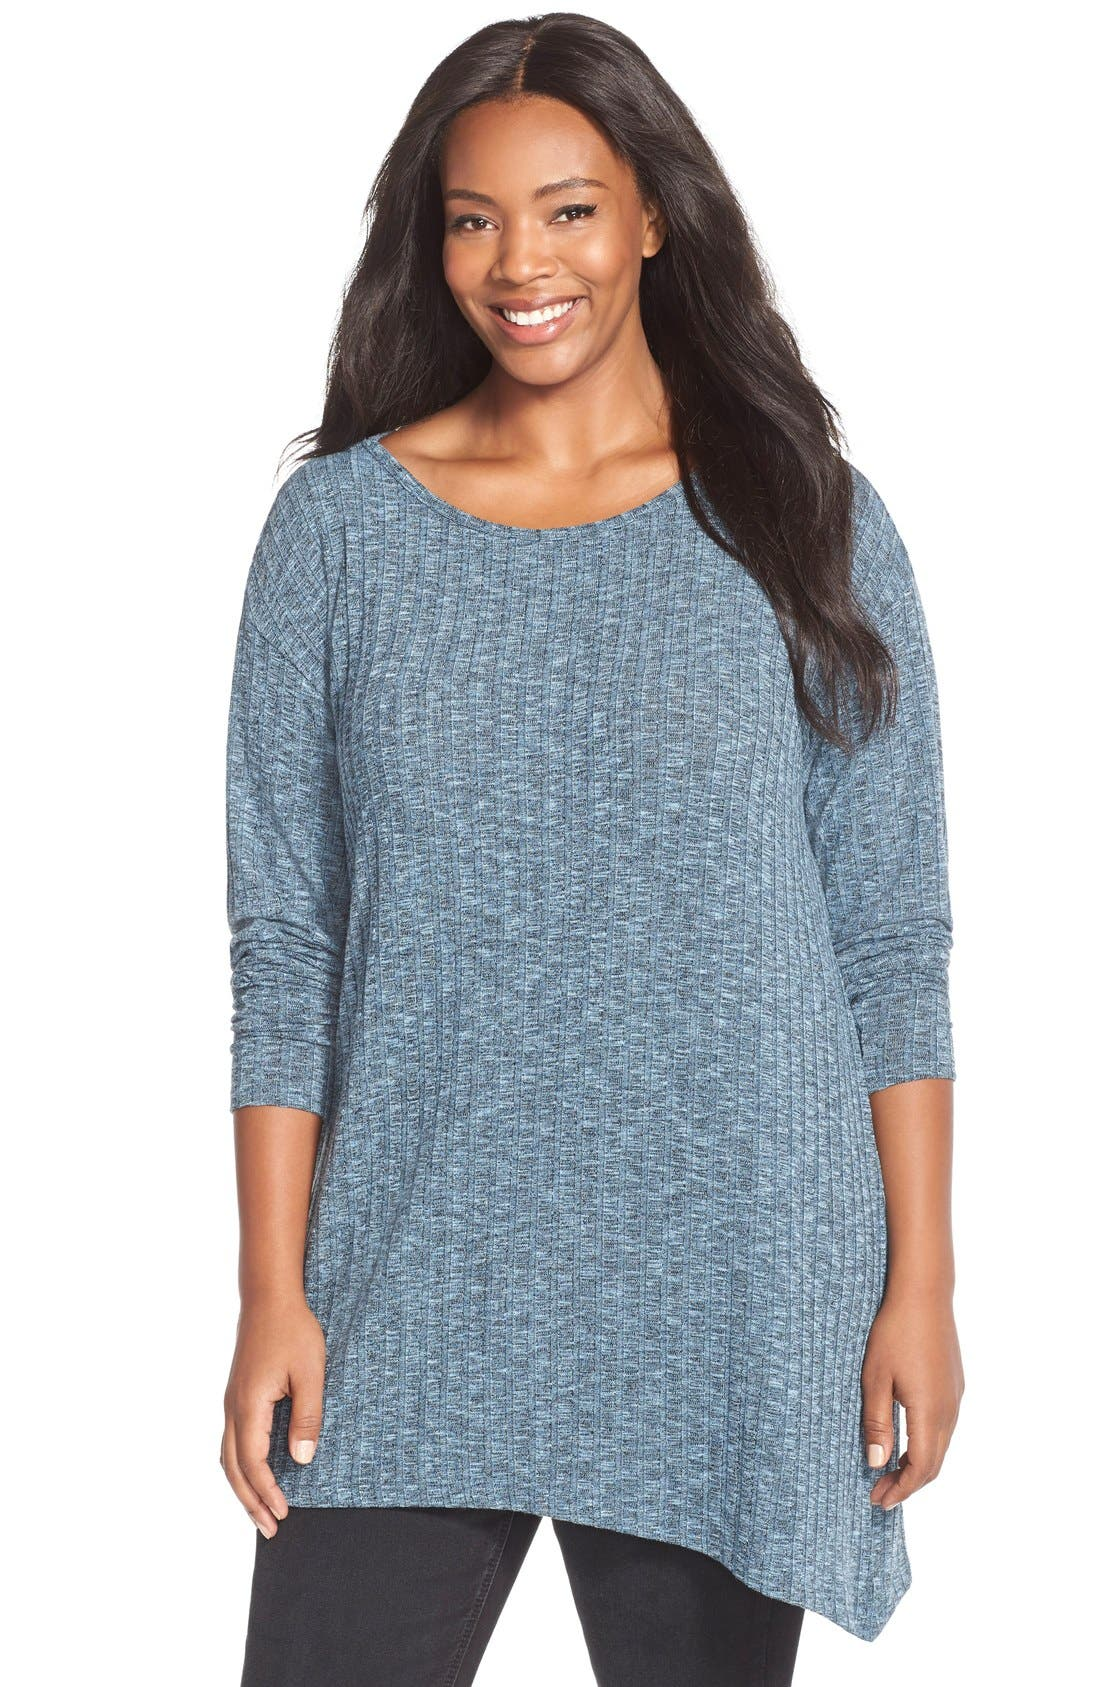 Asymmetrical Slub Knit Tunic,                             Main thumbnail 1, color,                             Blue Black Slub Rib Pattern